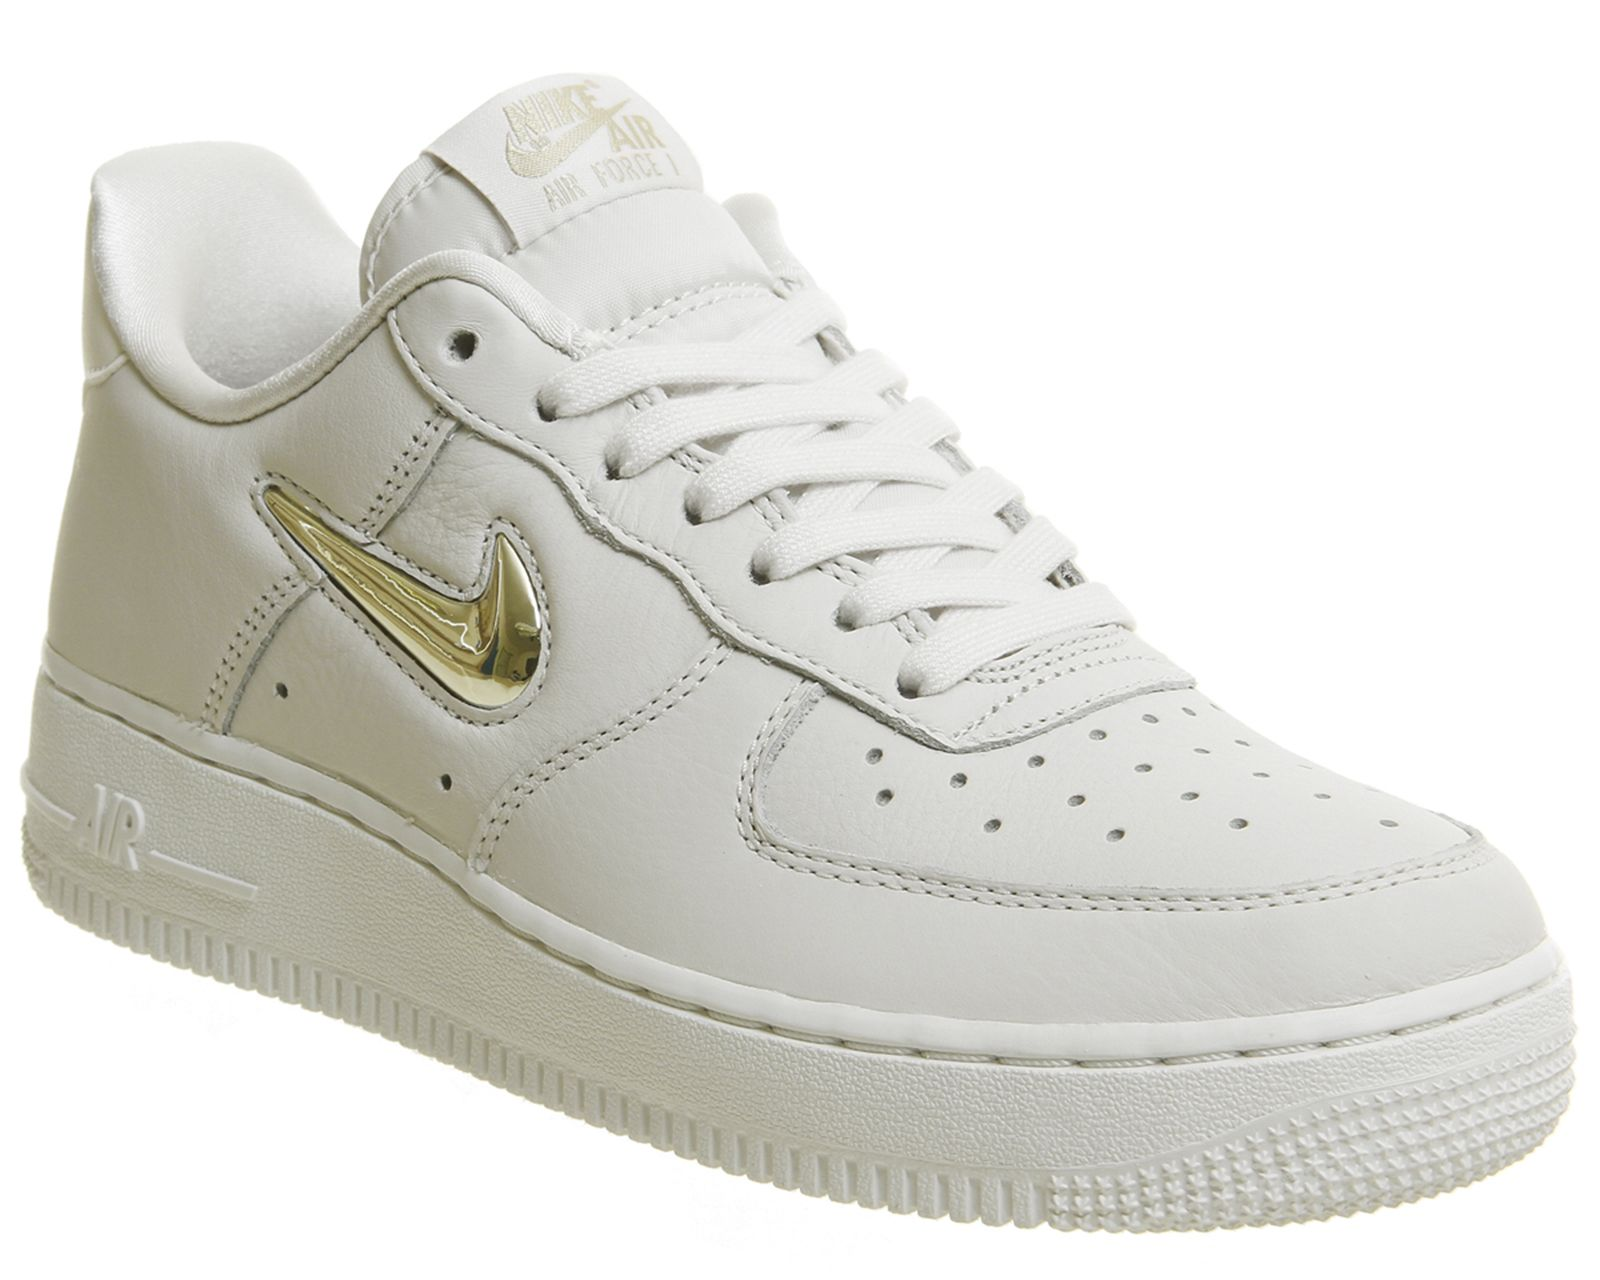 Nike, Air Force 1 Jewel Trainers, Phantom Metallic Gold Star